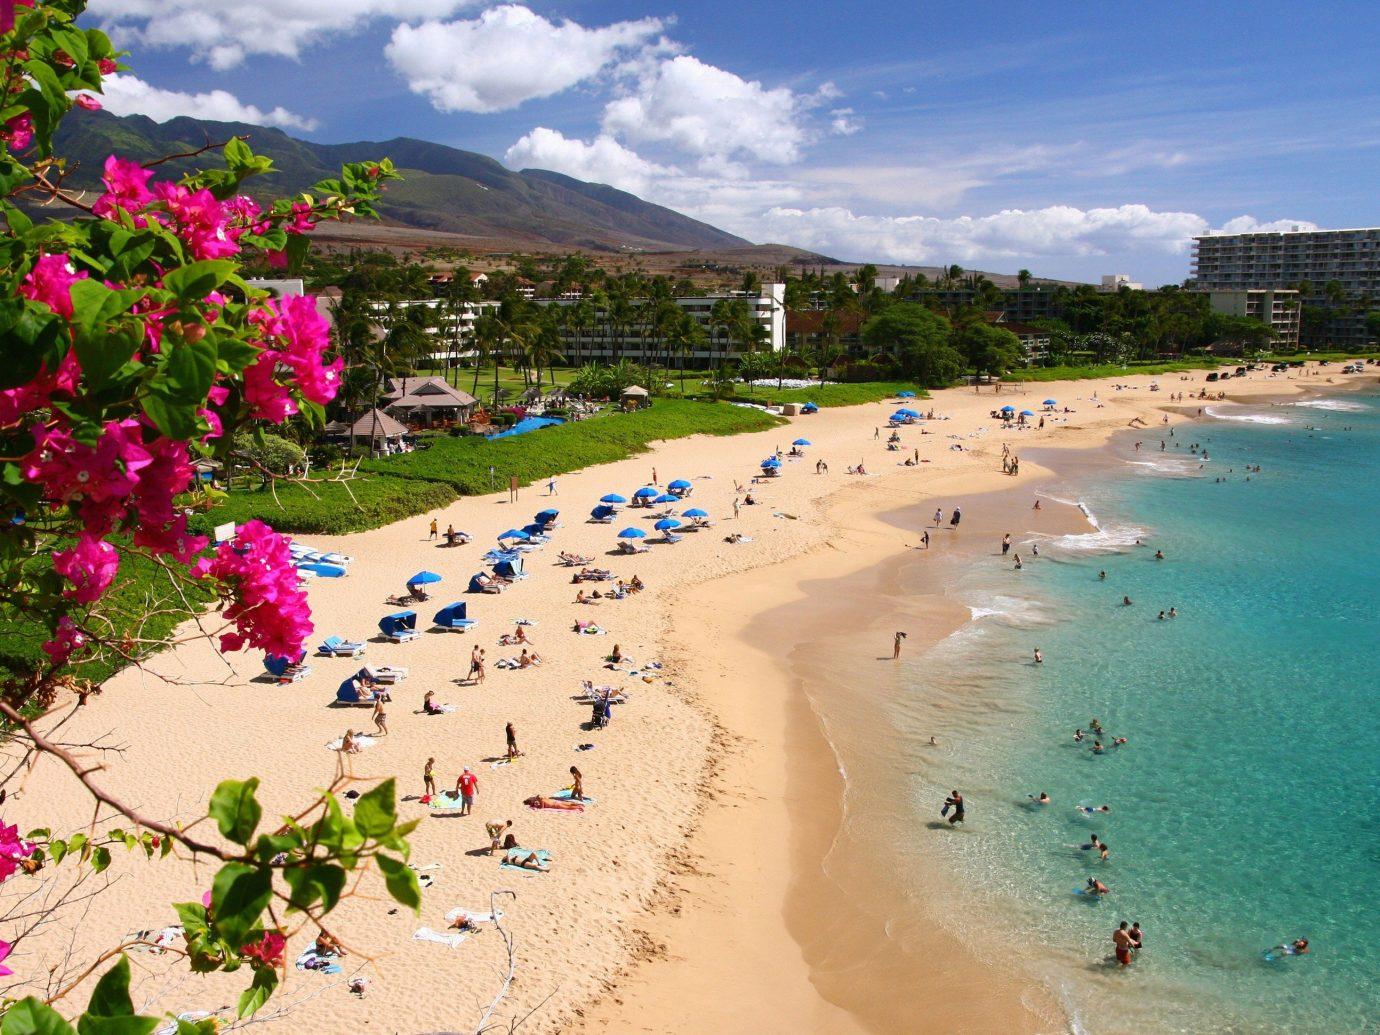 Trip Ideas sky outdoor Nature Beach body of water vacation mountain Sea Coast Resort bay flower shore surrounded several